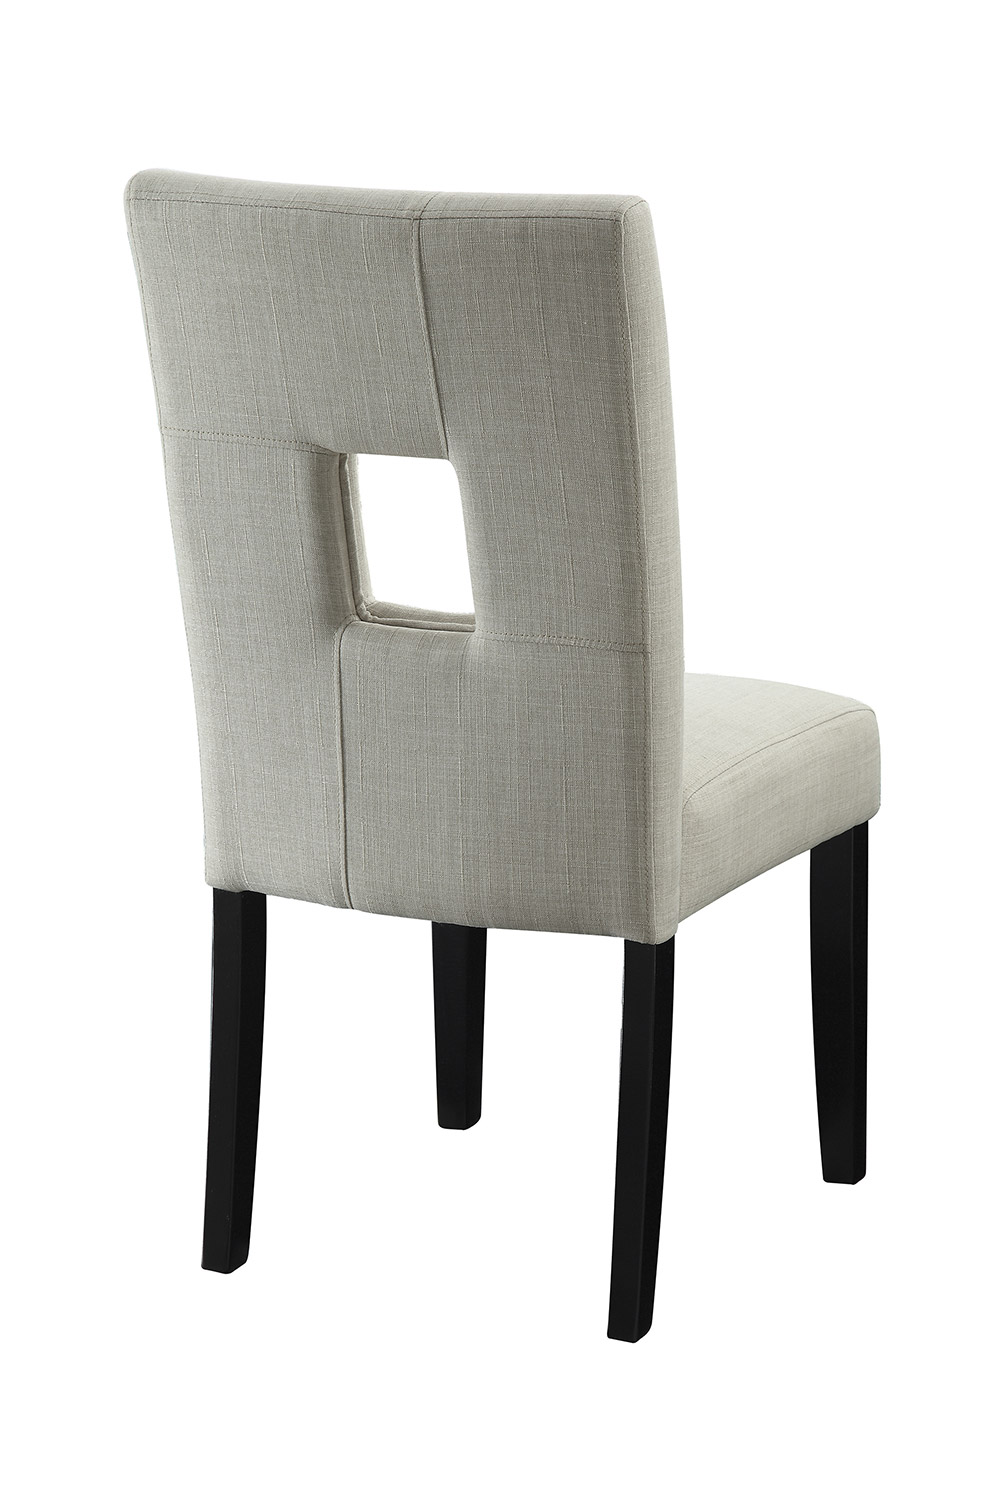 Coaster Andenne Dining Chair - Beige/Black